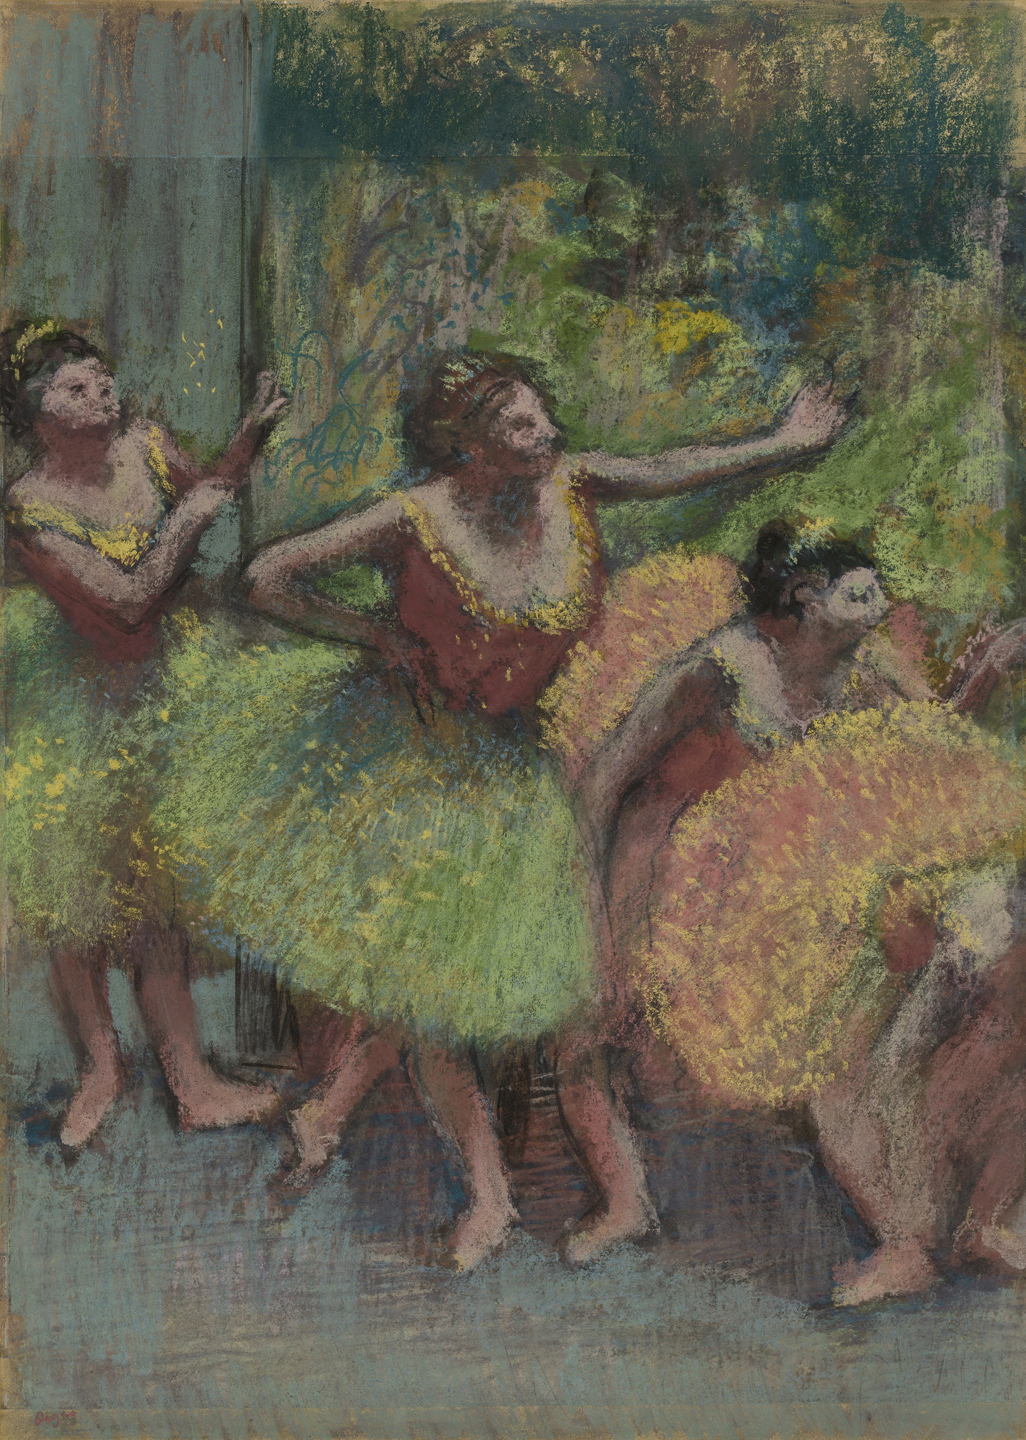 Dancers in Green and Yellow (ca. 1903), by Edgar Degas. Pastel and charcoal on several pieces of tracing paper, mounted to paperboard, 98.8 x 71.5 cm. Solomon R. Guggenheim Museum, New York.